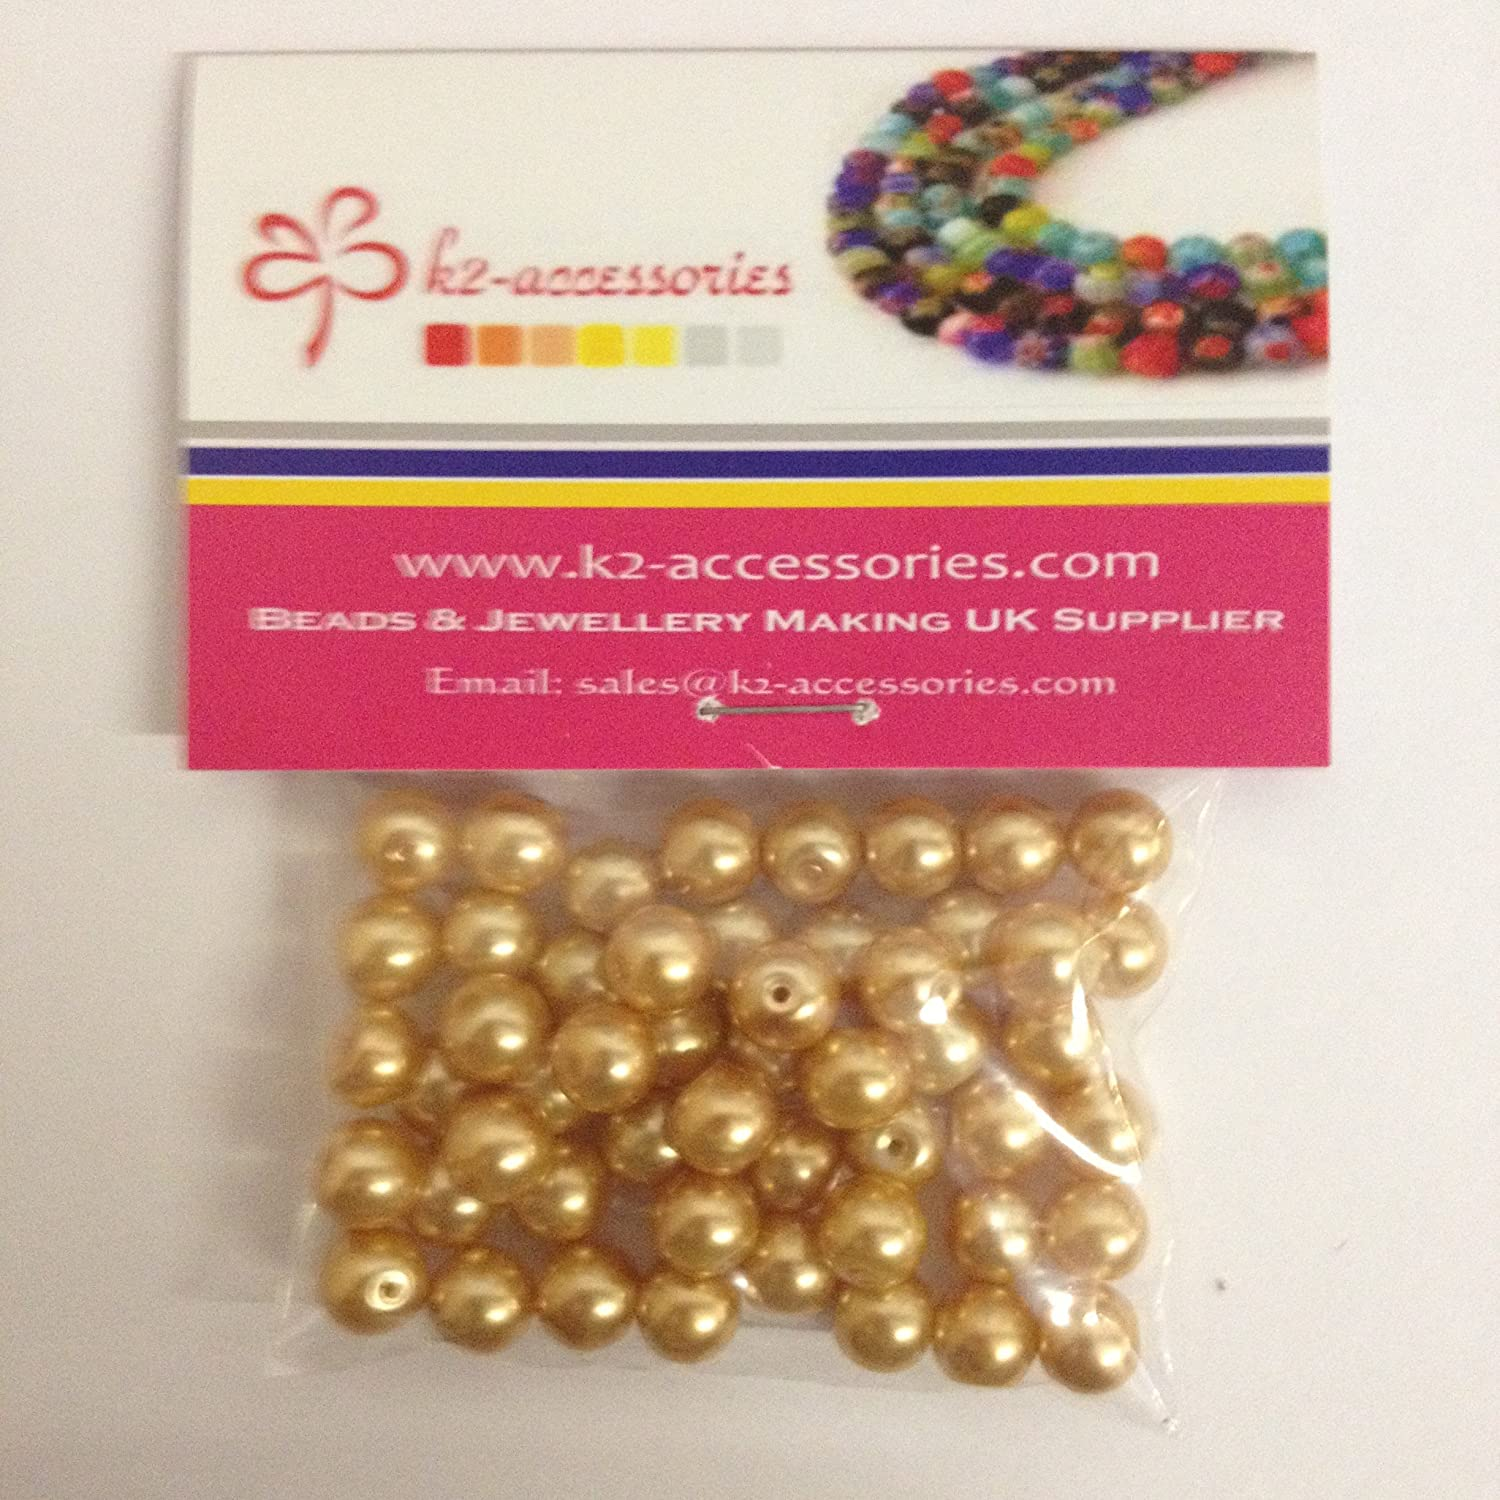 100 pieces 8mm Glass Pearl Beads - Golden - A1008 k2-accessories